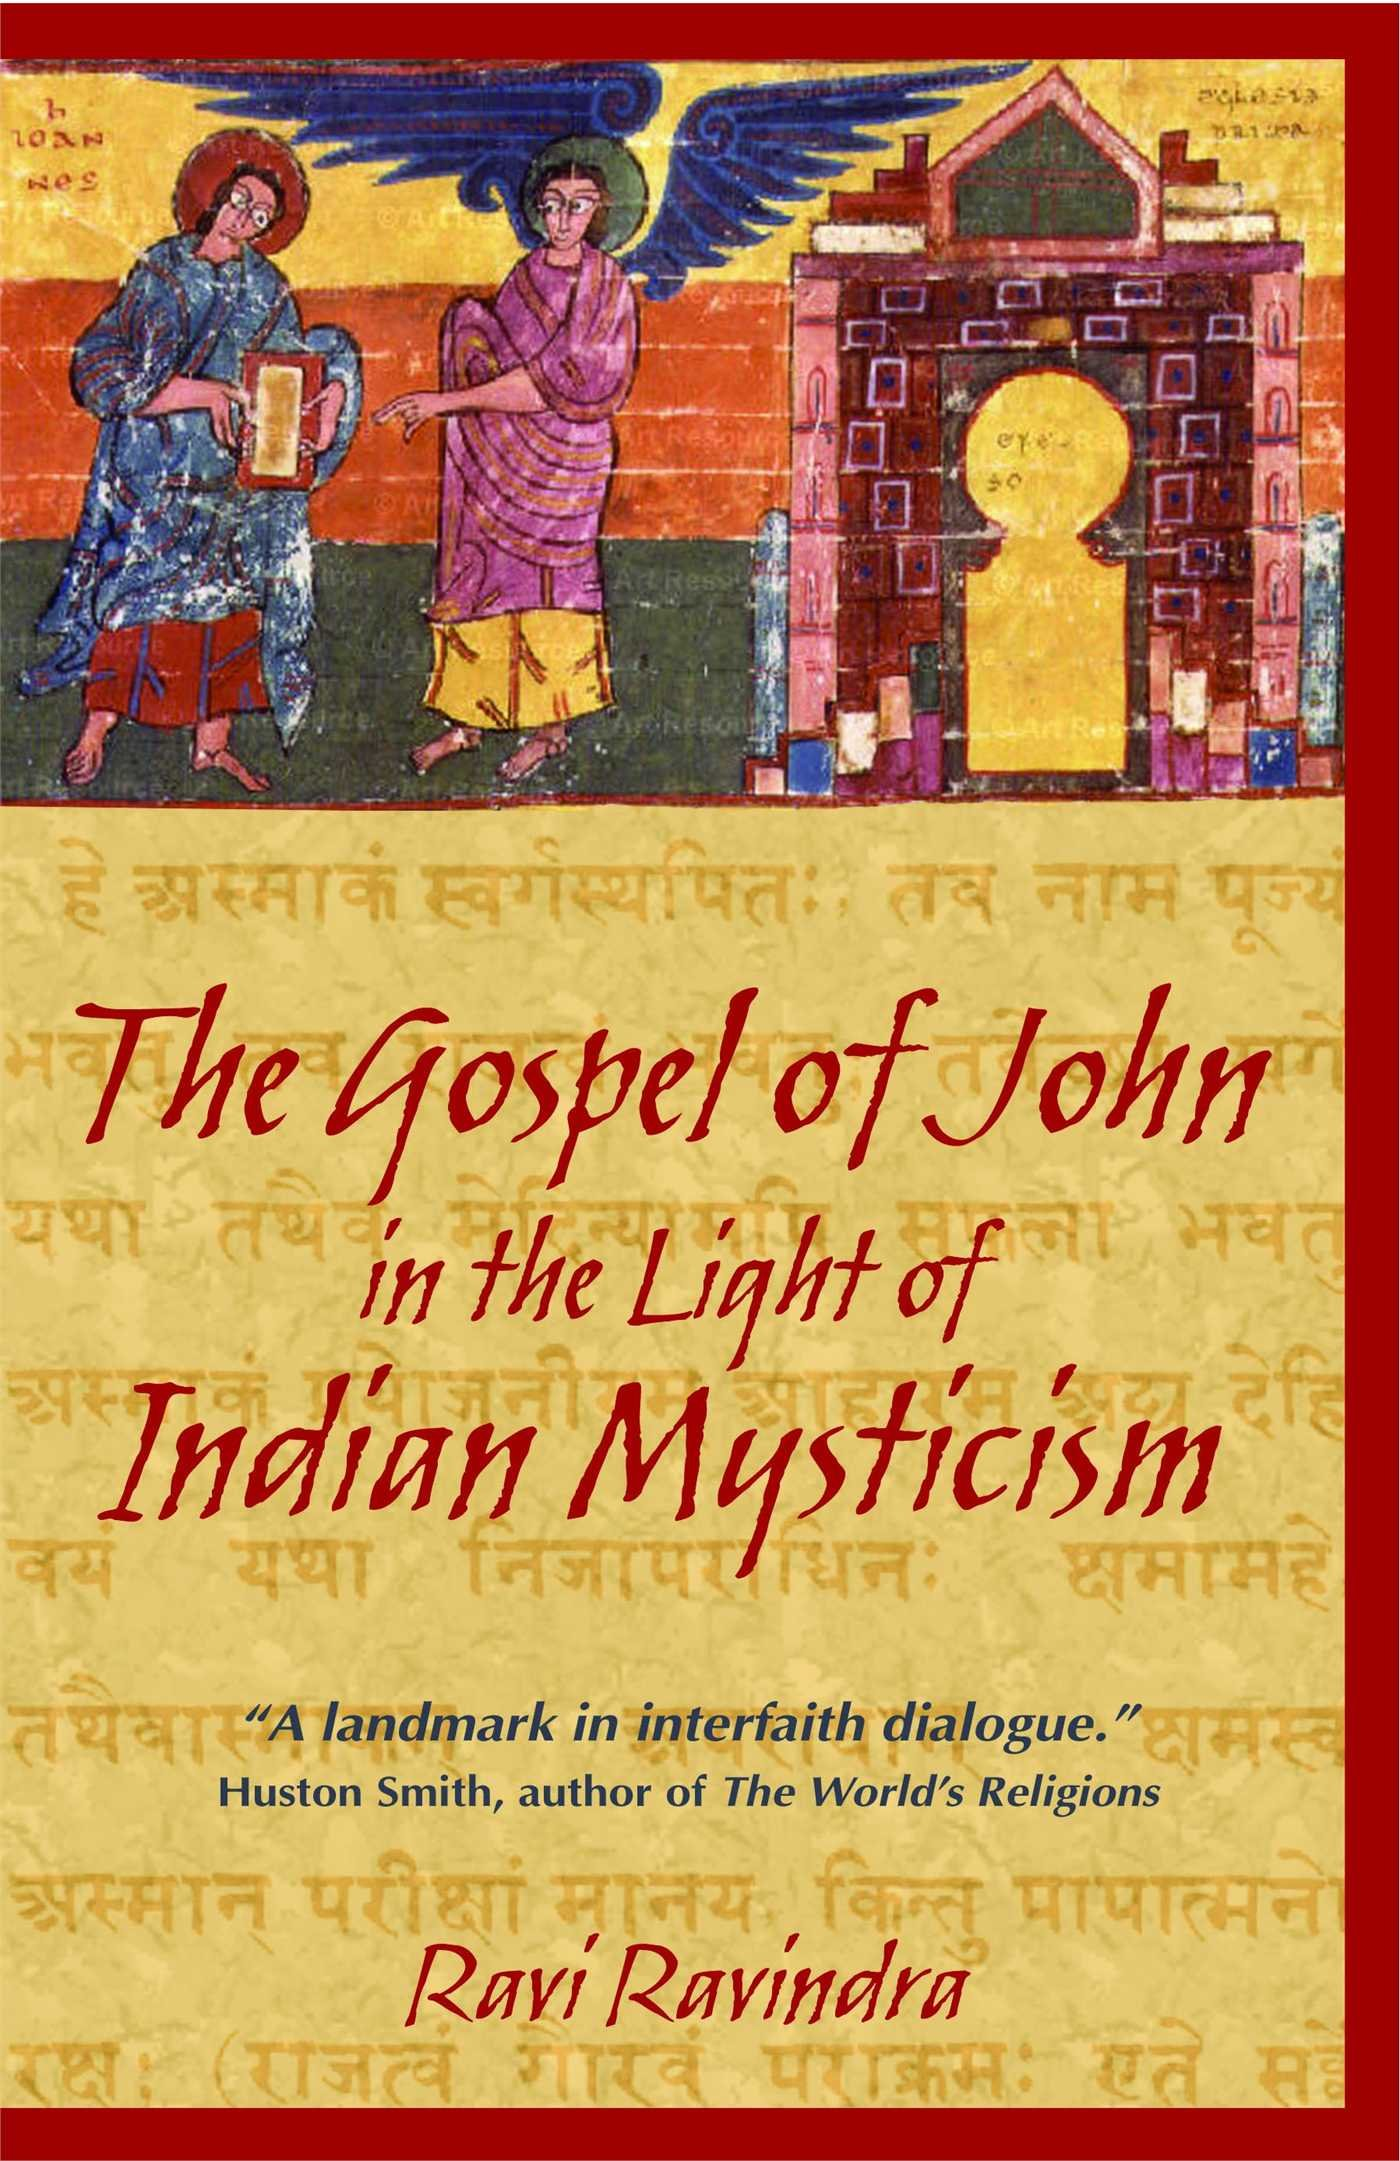 The gospel of john in the light of indian mysticism ravi ravindra the gospel of john in the light of indian mysticism ravi ravindra 9781594770180 amazon books buycottarizona Choice Image